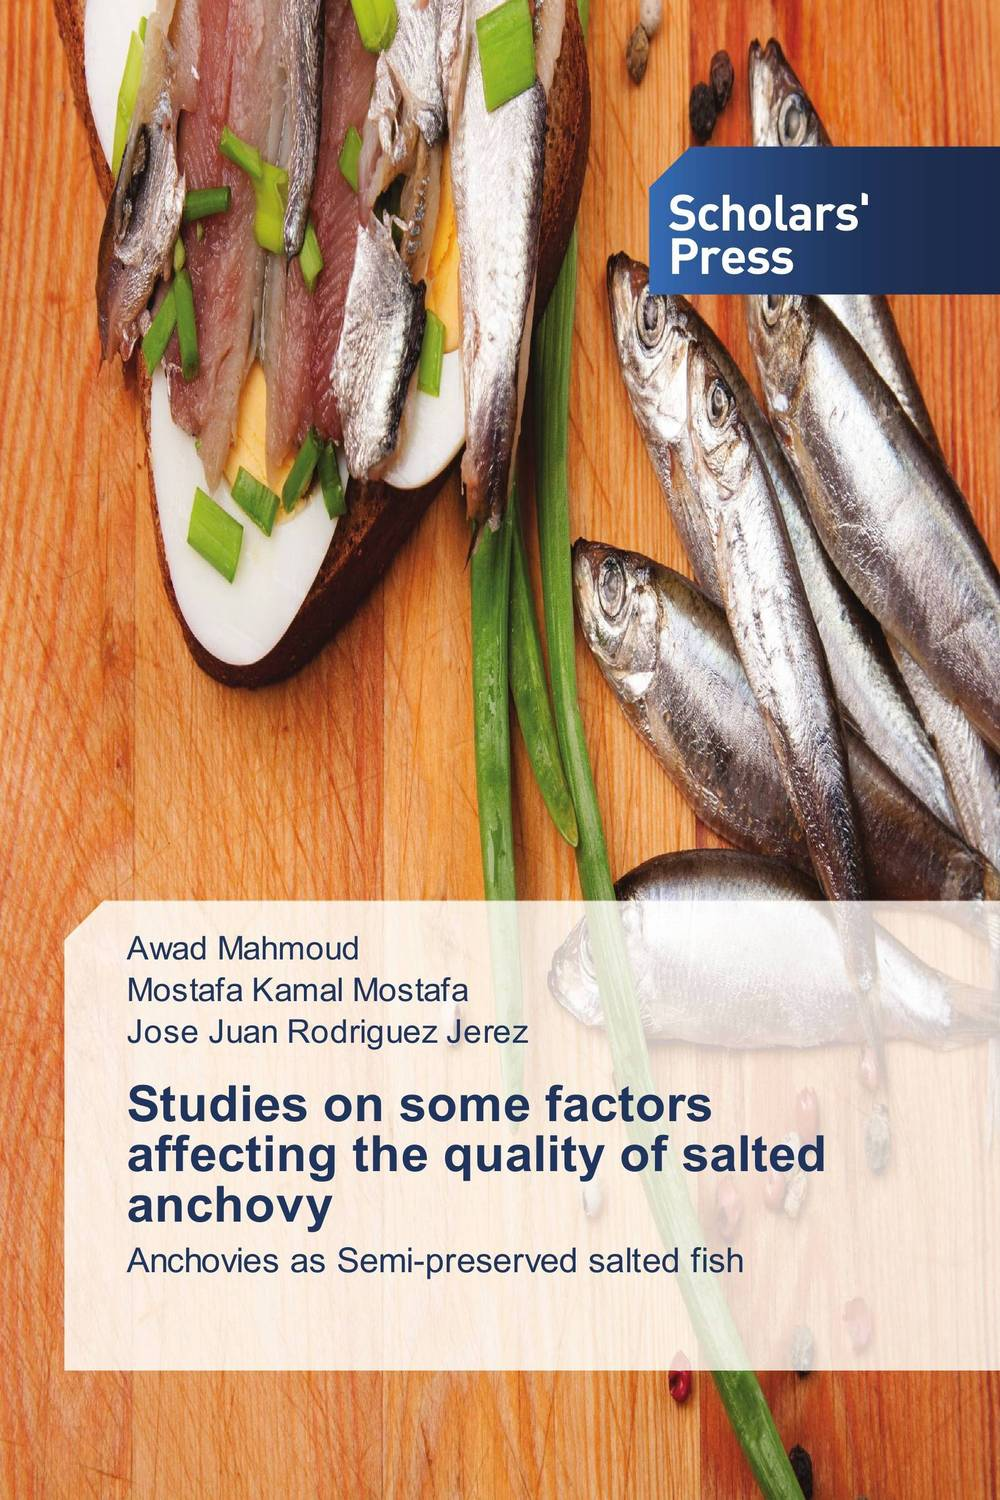 Studies on some factors affecting the quality of salted anchovy? ravindra kumar jain nod factors and nodulation process by rhizobia in cicer arietinum